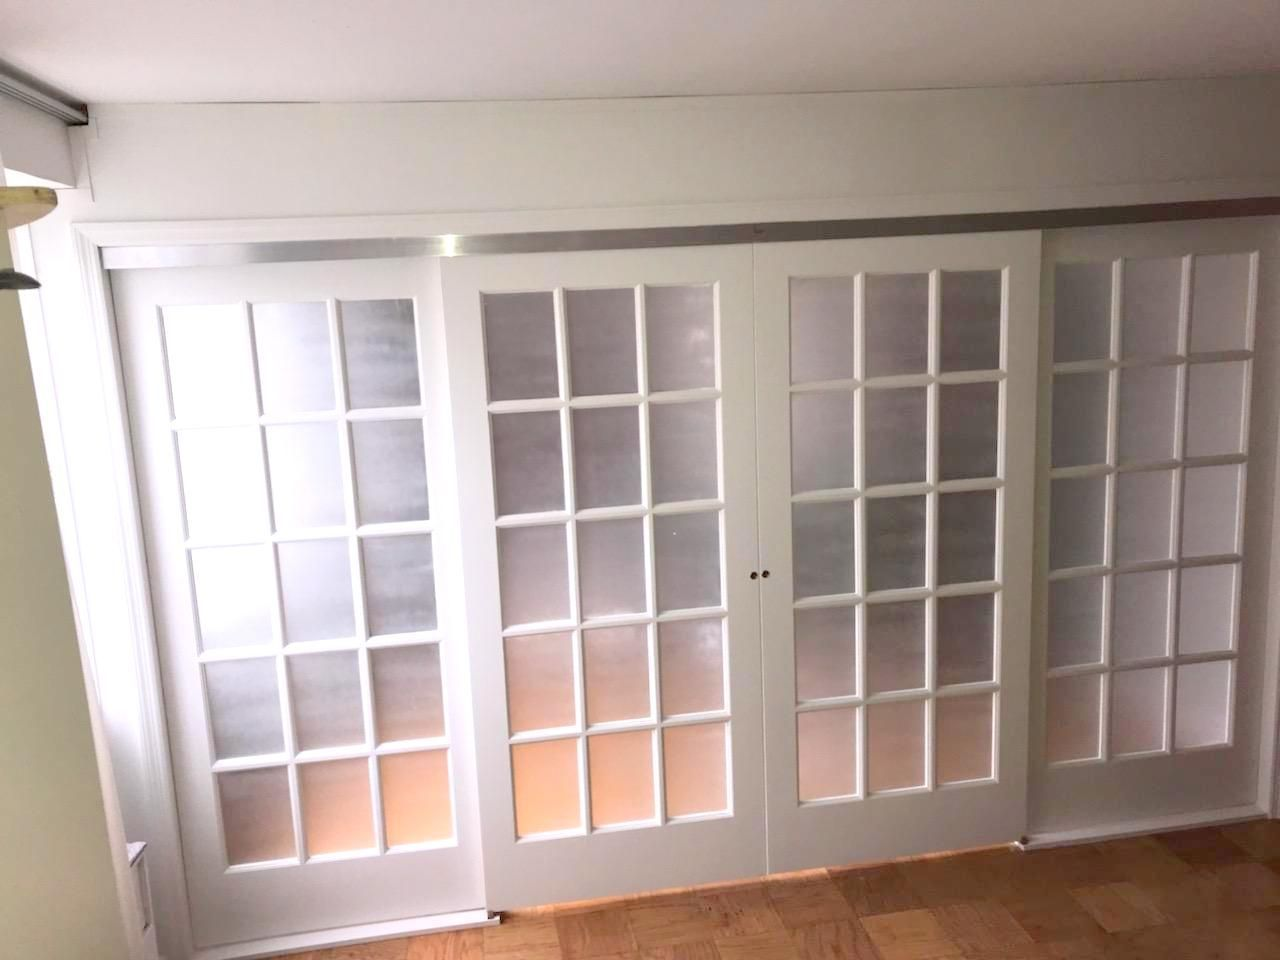 Temporary Sliding French Door Wall Call Us For All Your Custom Room Partition And Storage Wall Inquiries 646 Room Divider Doors Temporary Wall Bookcase Wall